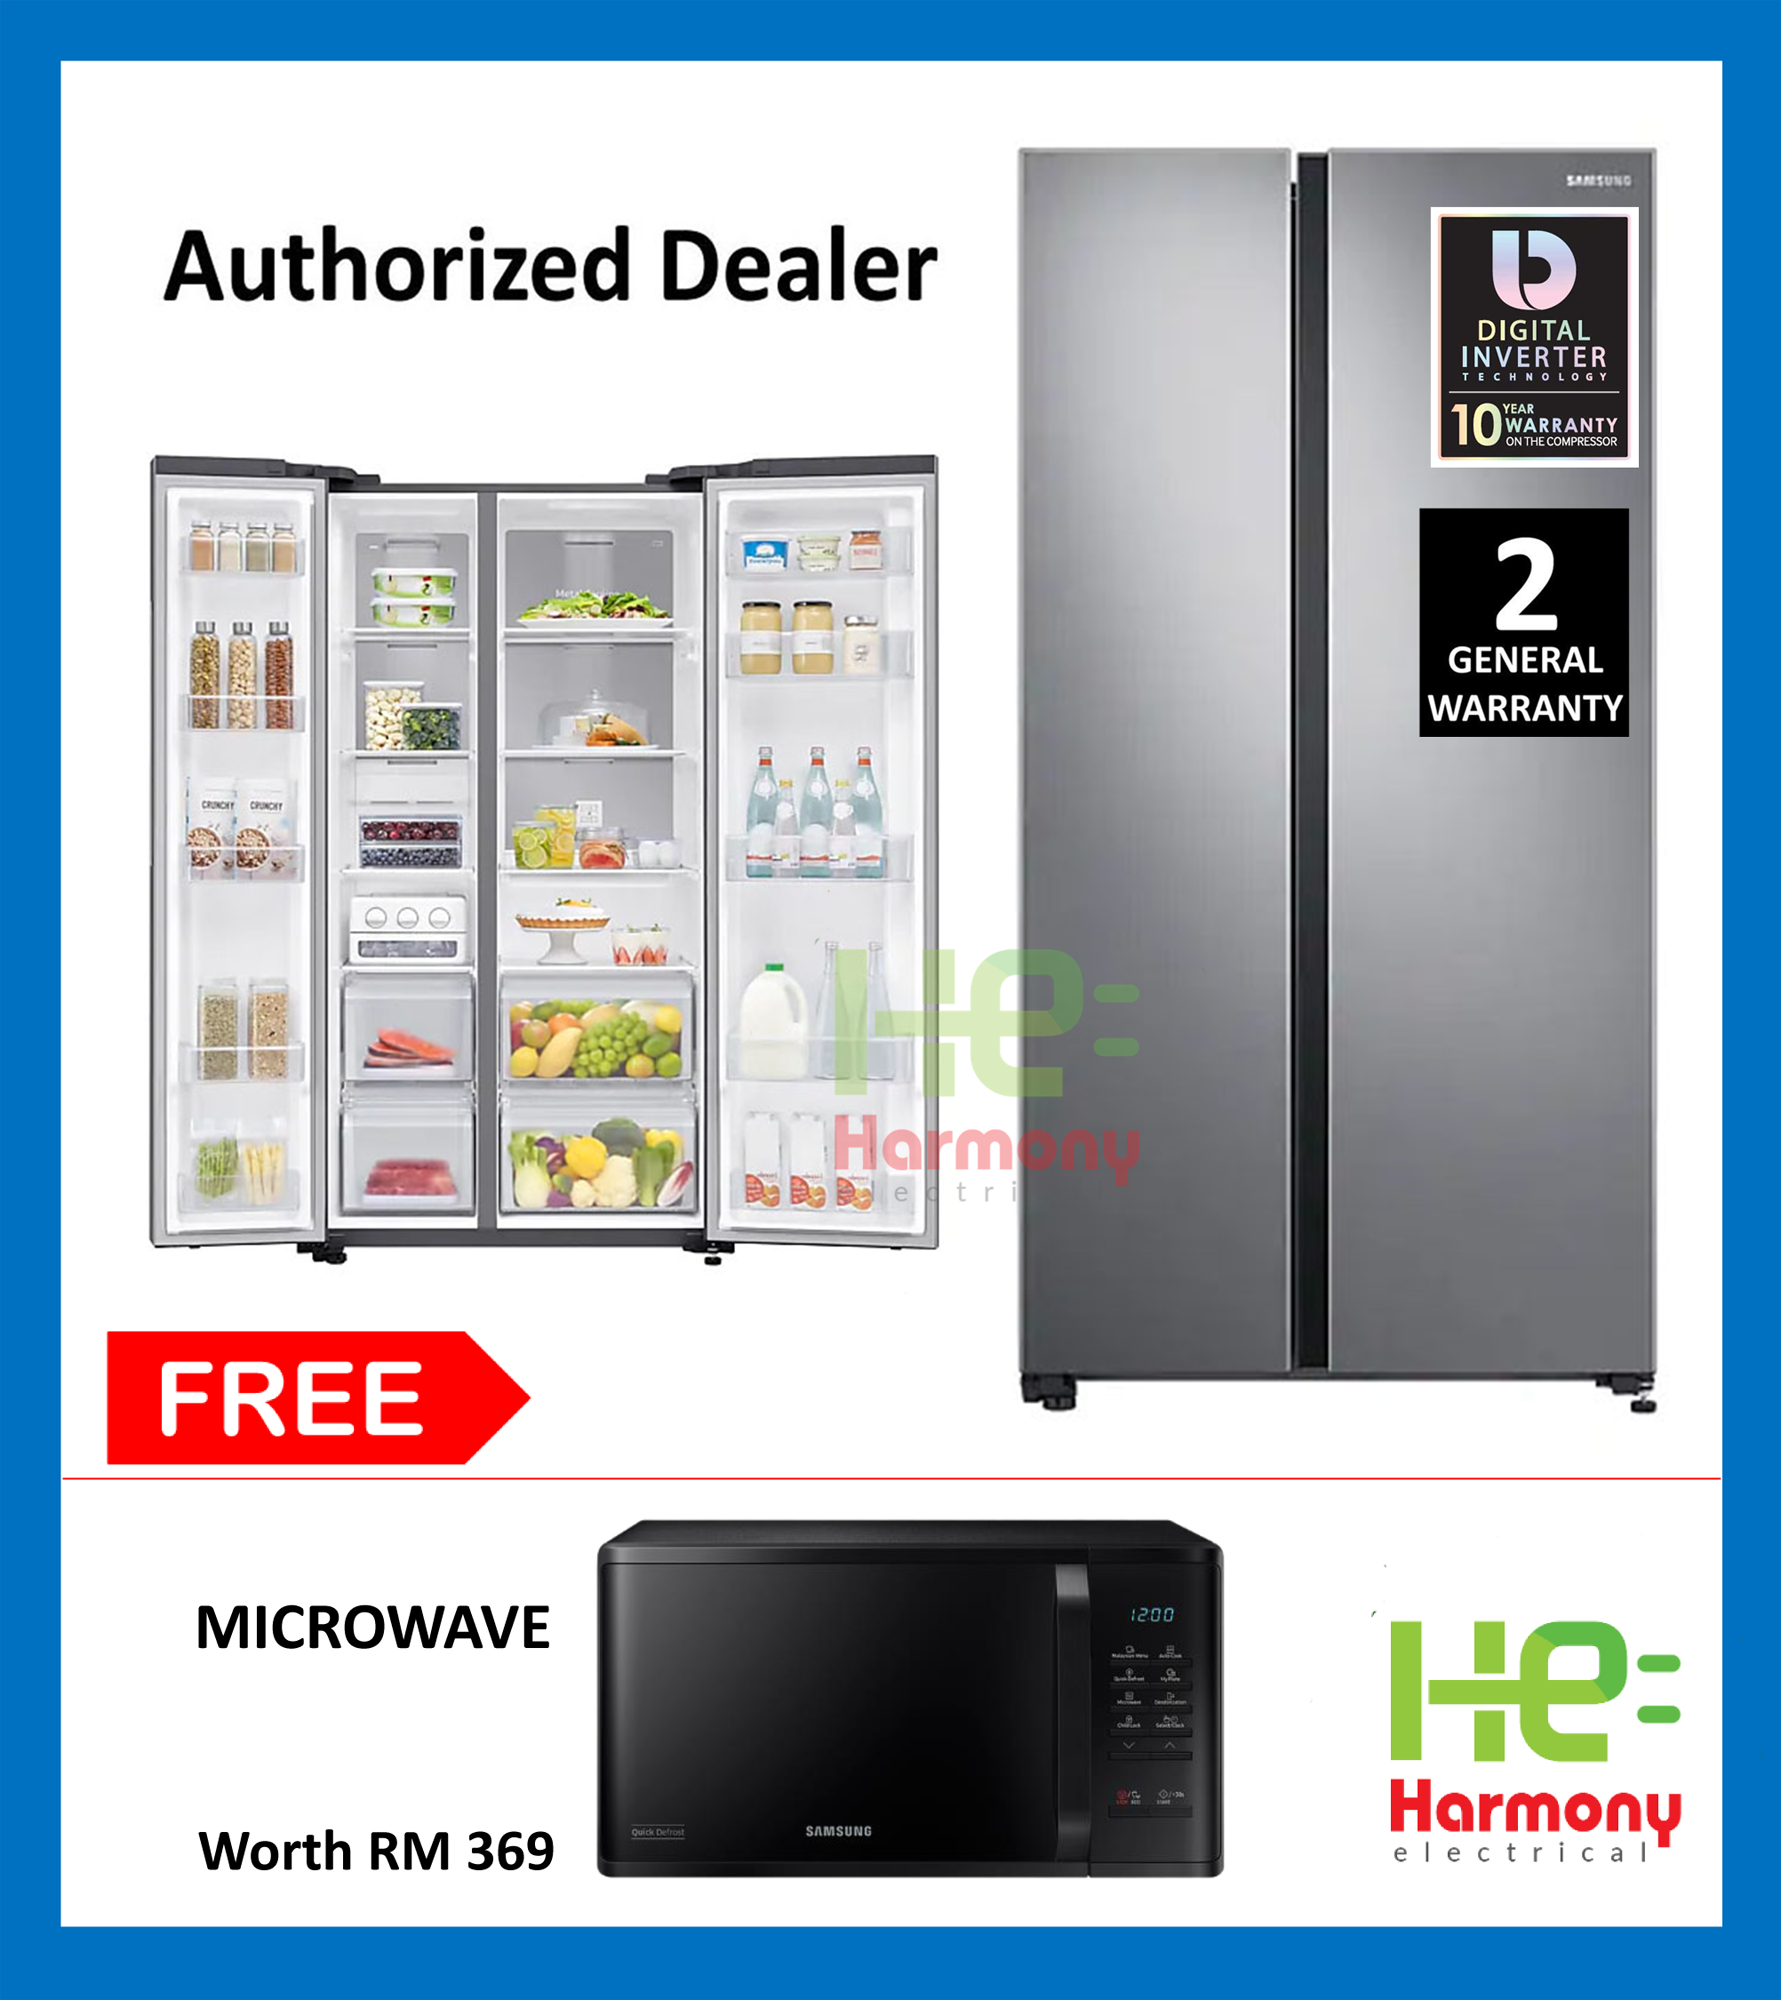 Samsung 680L Side by Side Fridge with Large Capacity (SpaceMax) Peti Sejuk RS62R5031SL/ME + FREE Samsung Microwave MS23K3513AK/SM Worth RM369